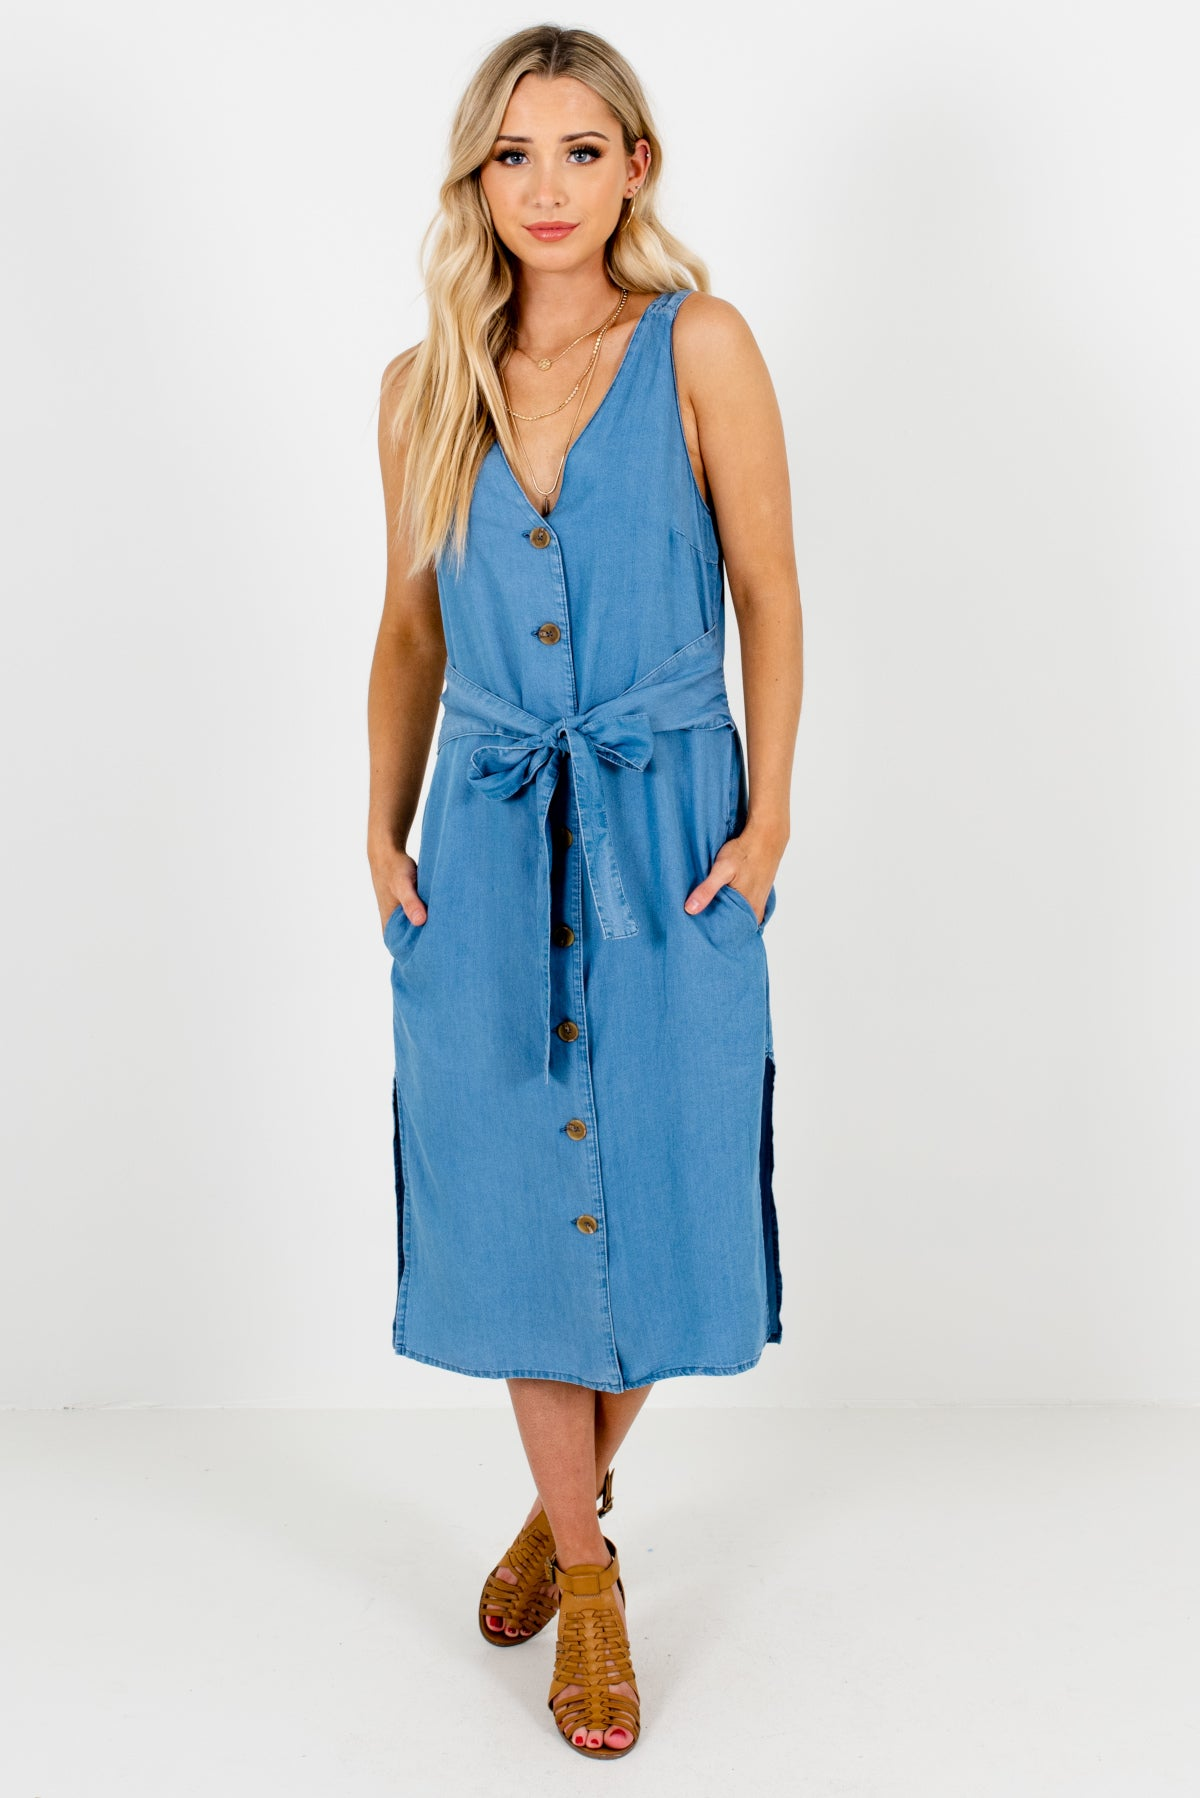 Denim Blue High-Quality Chambray Material Boutique Midi Dresses for Women